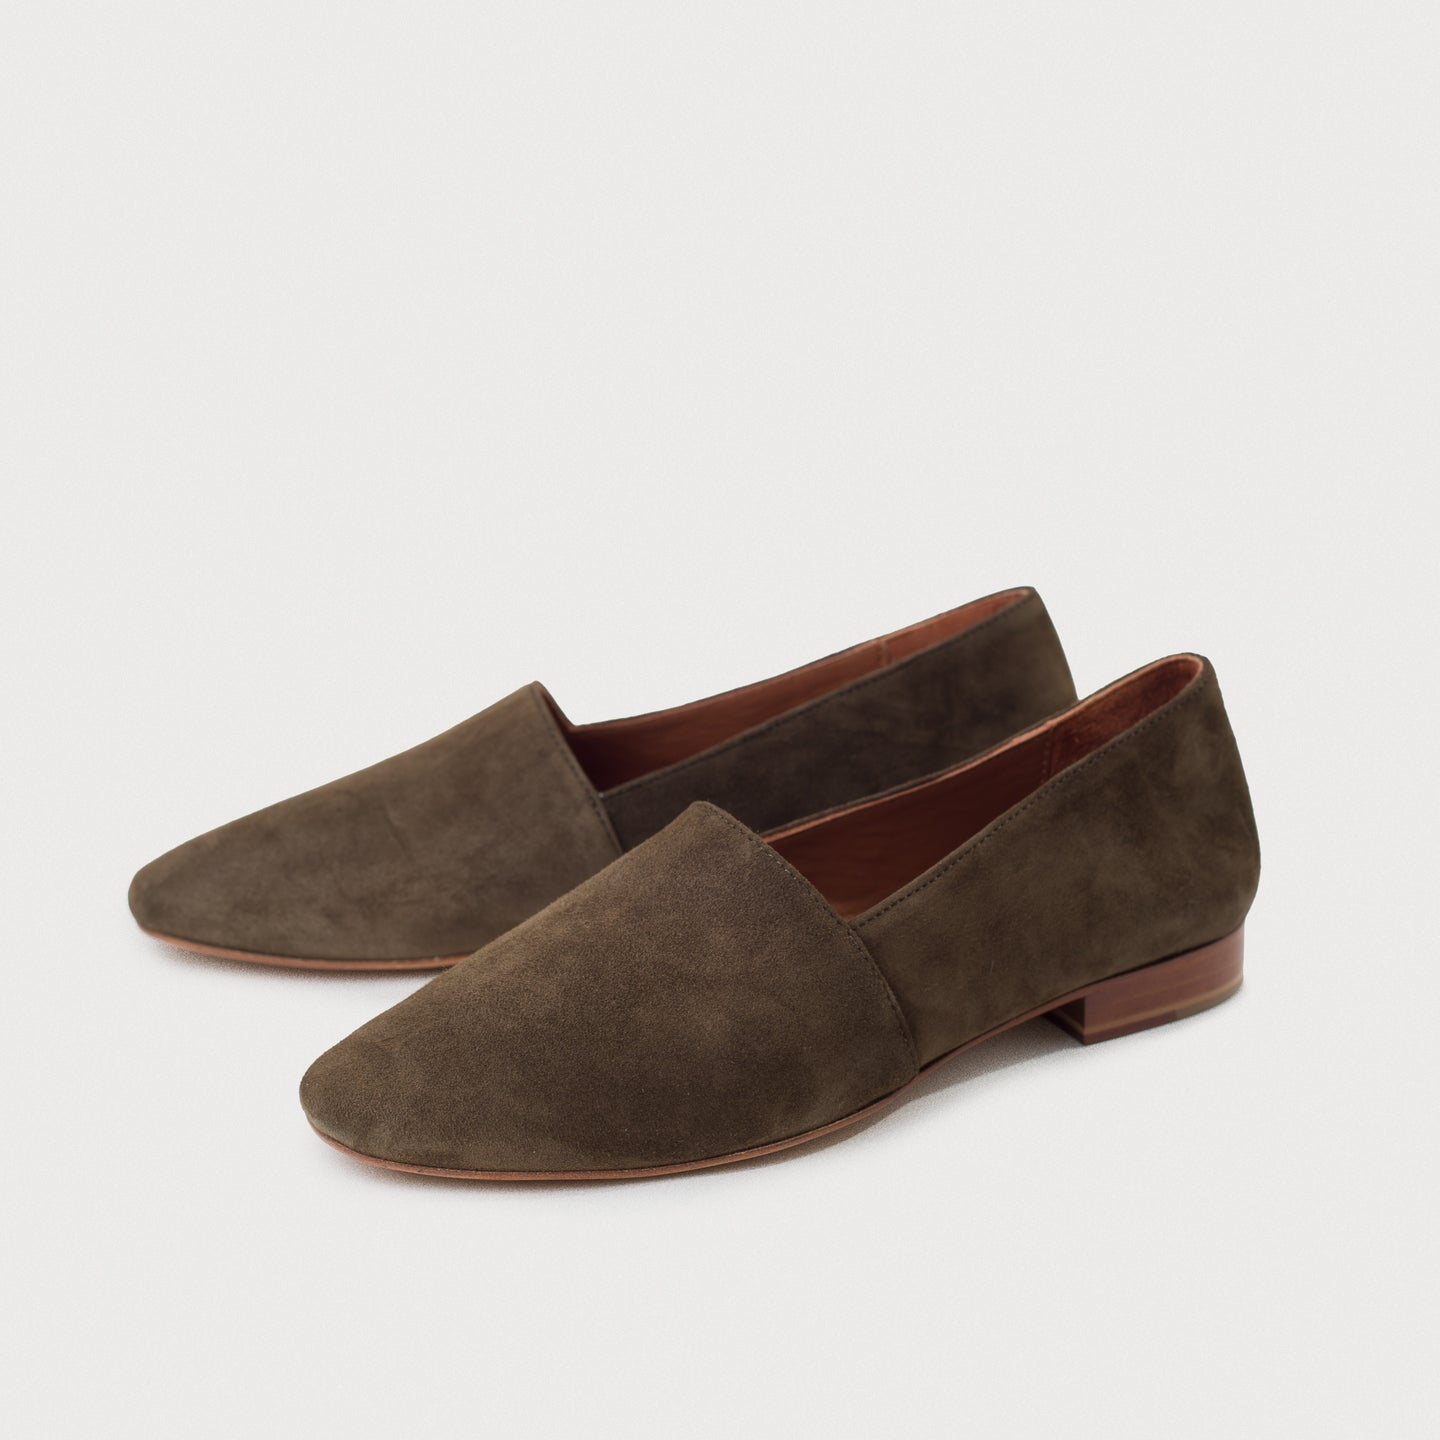 Slipper - Cipres Suede Sale (ONLY 1)